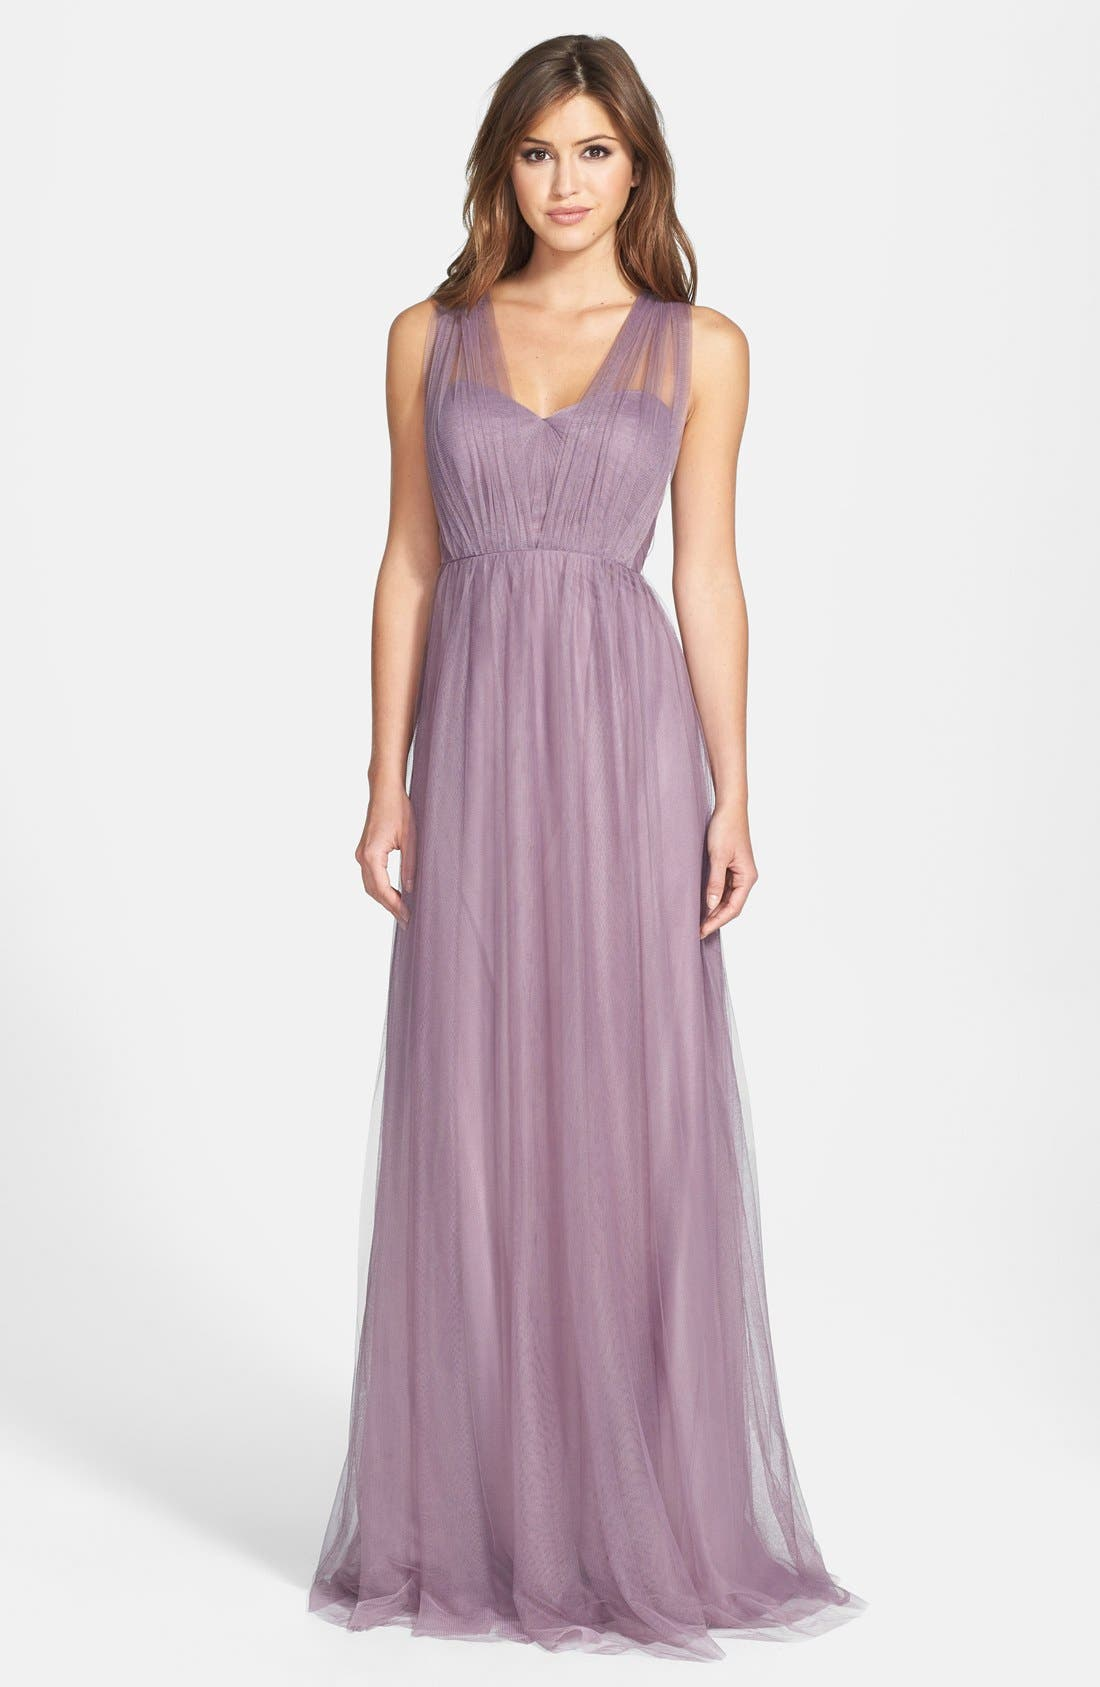 Annabelle Convertible Tulle Column Dress,                             Alternate thumbnail 186, color,